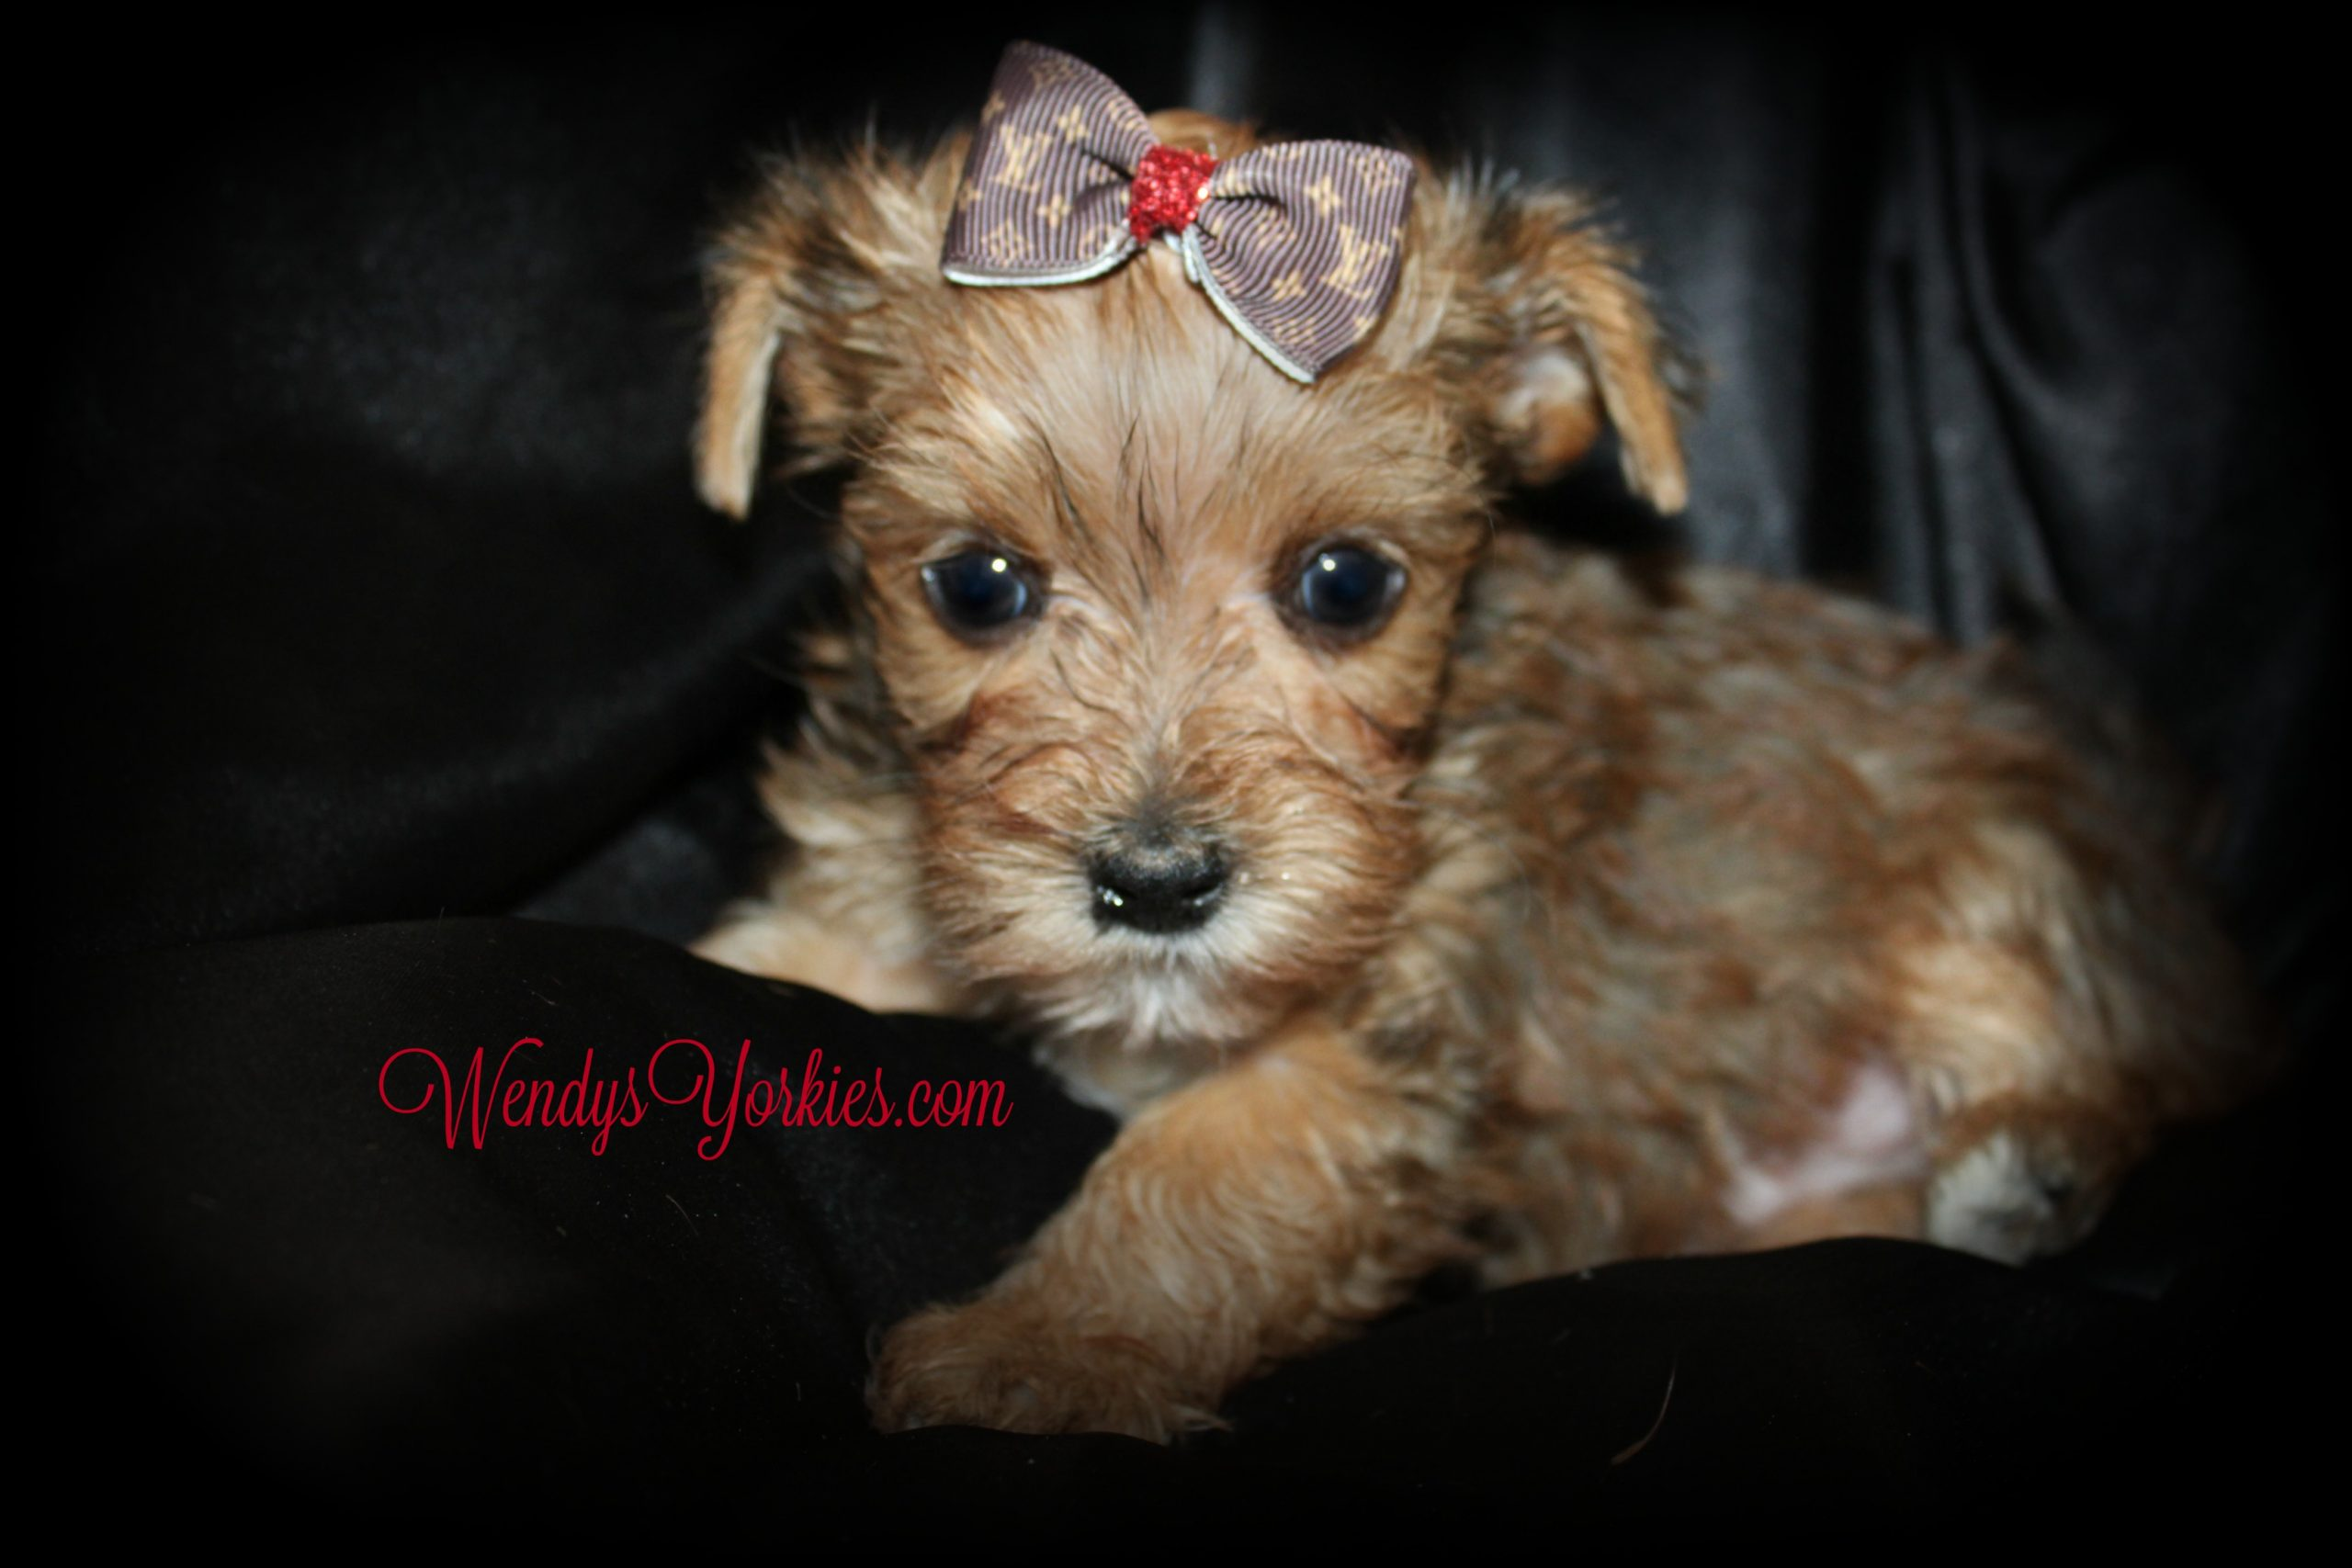 Blonde Yorkie puppies for sale, River, WendysYorkies.com